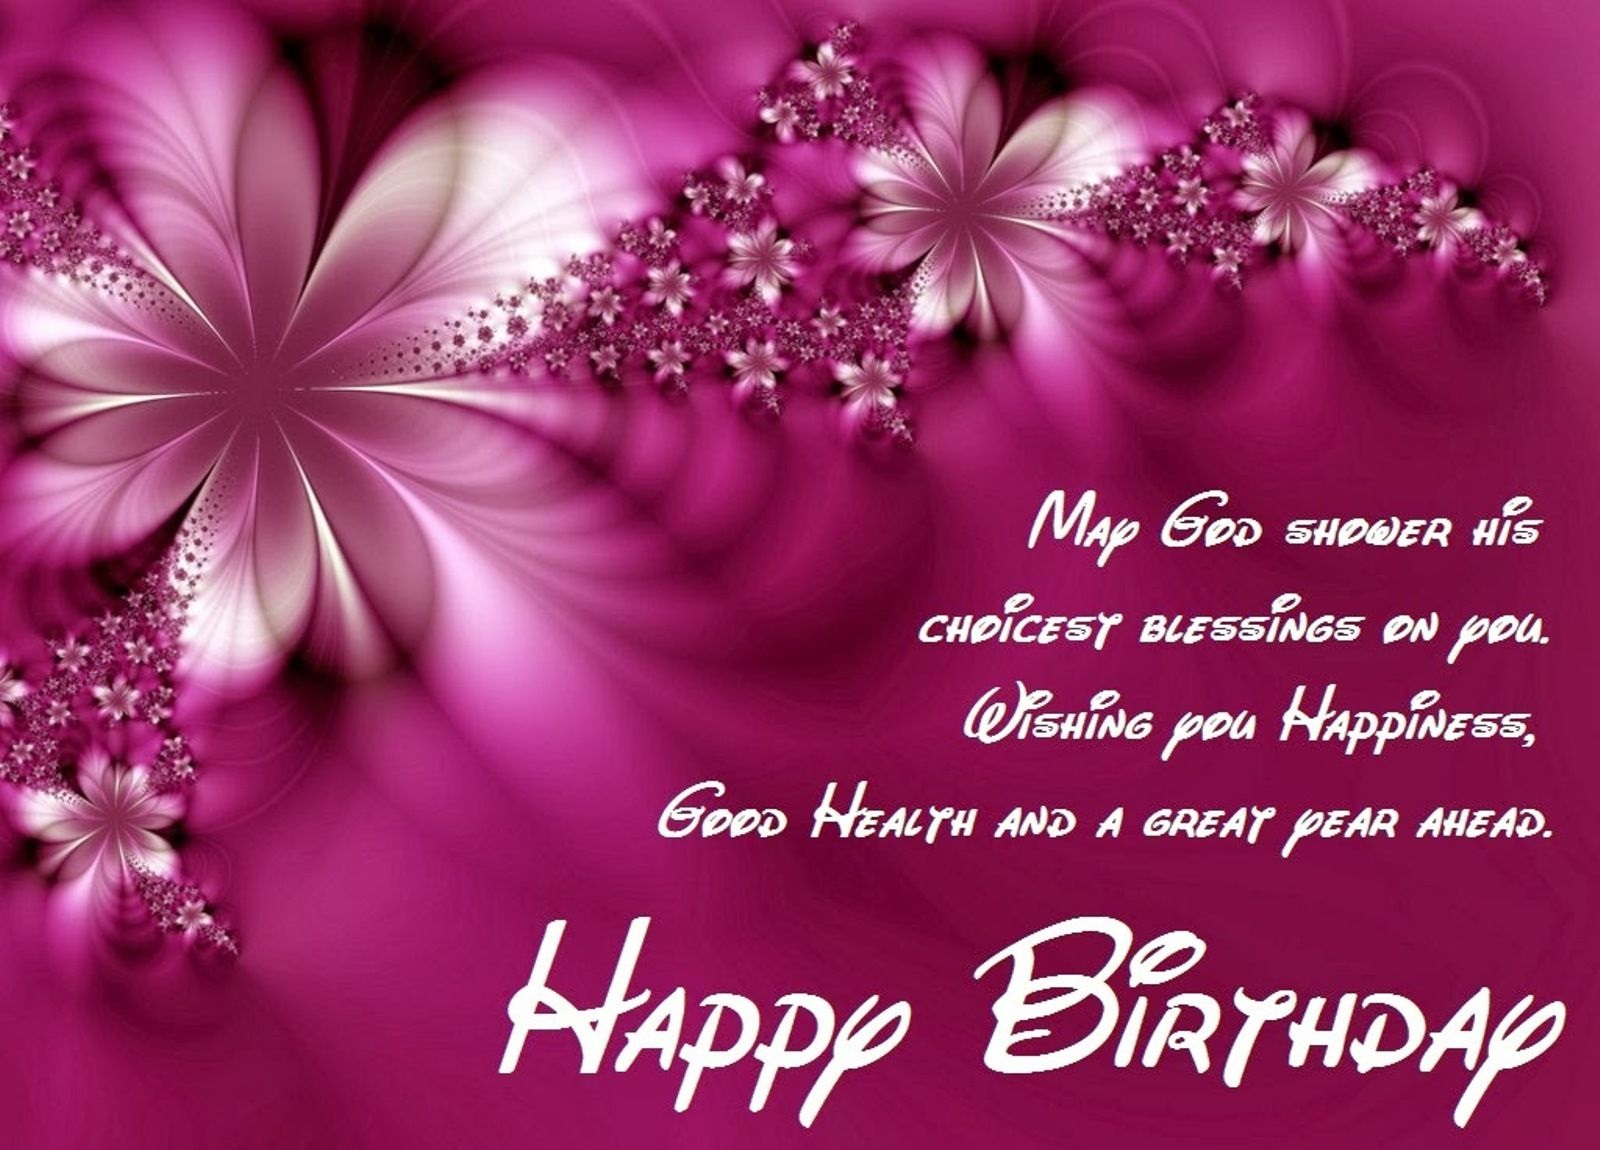 September Birthday Images, Quotes Free Download